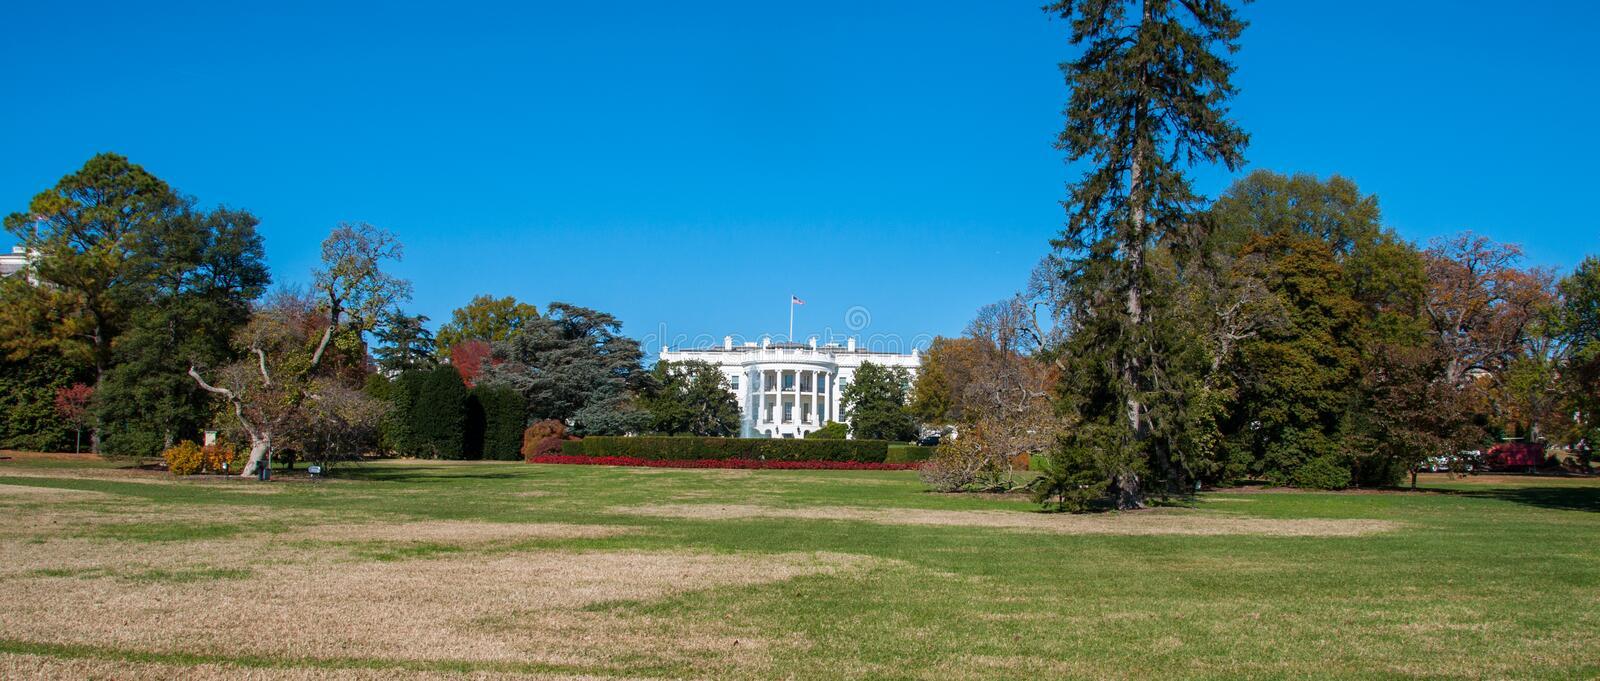 The White House and Lawn at the Nations Capital. Washington D.C stock images